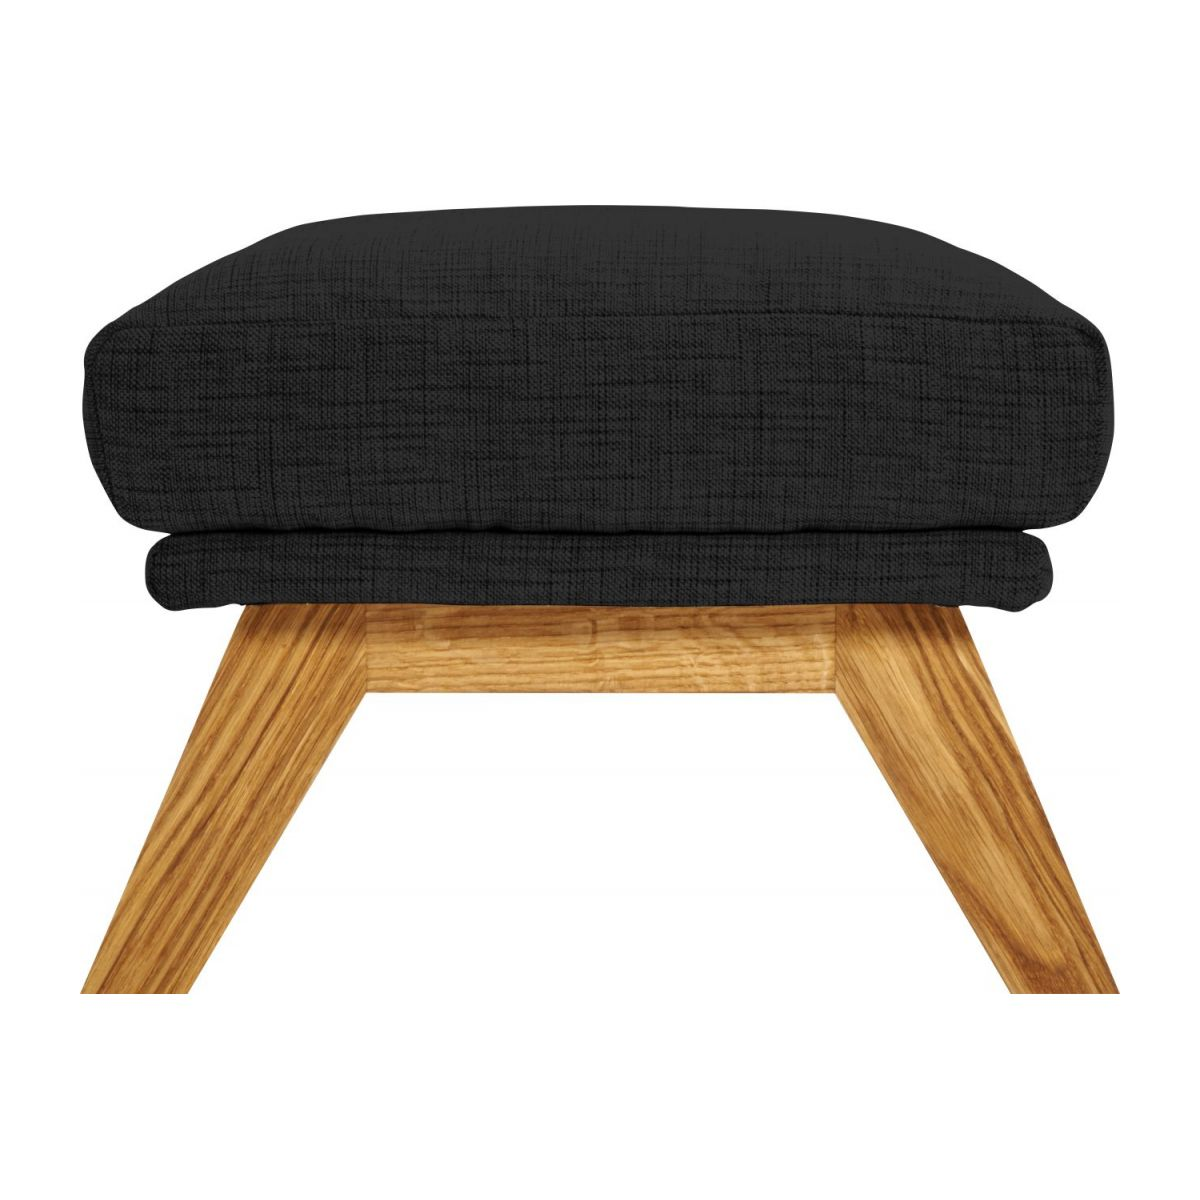 Footstool in Ancio fabric, nero with oak legs n°5